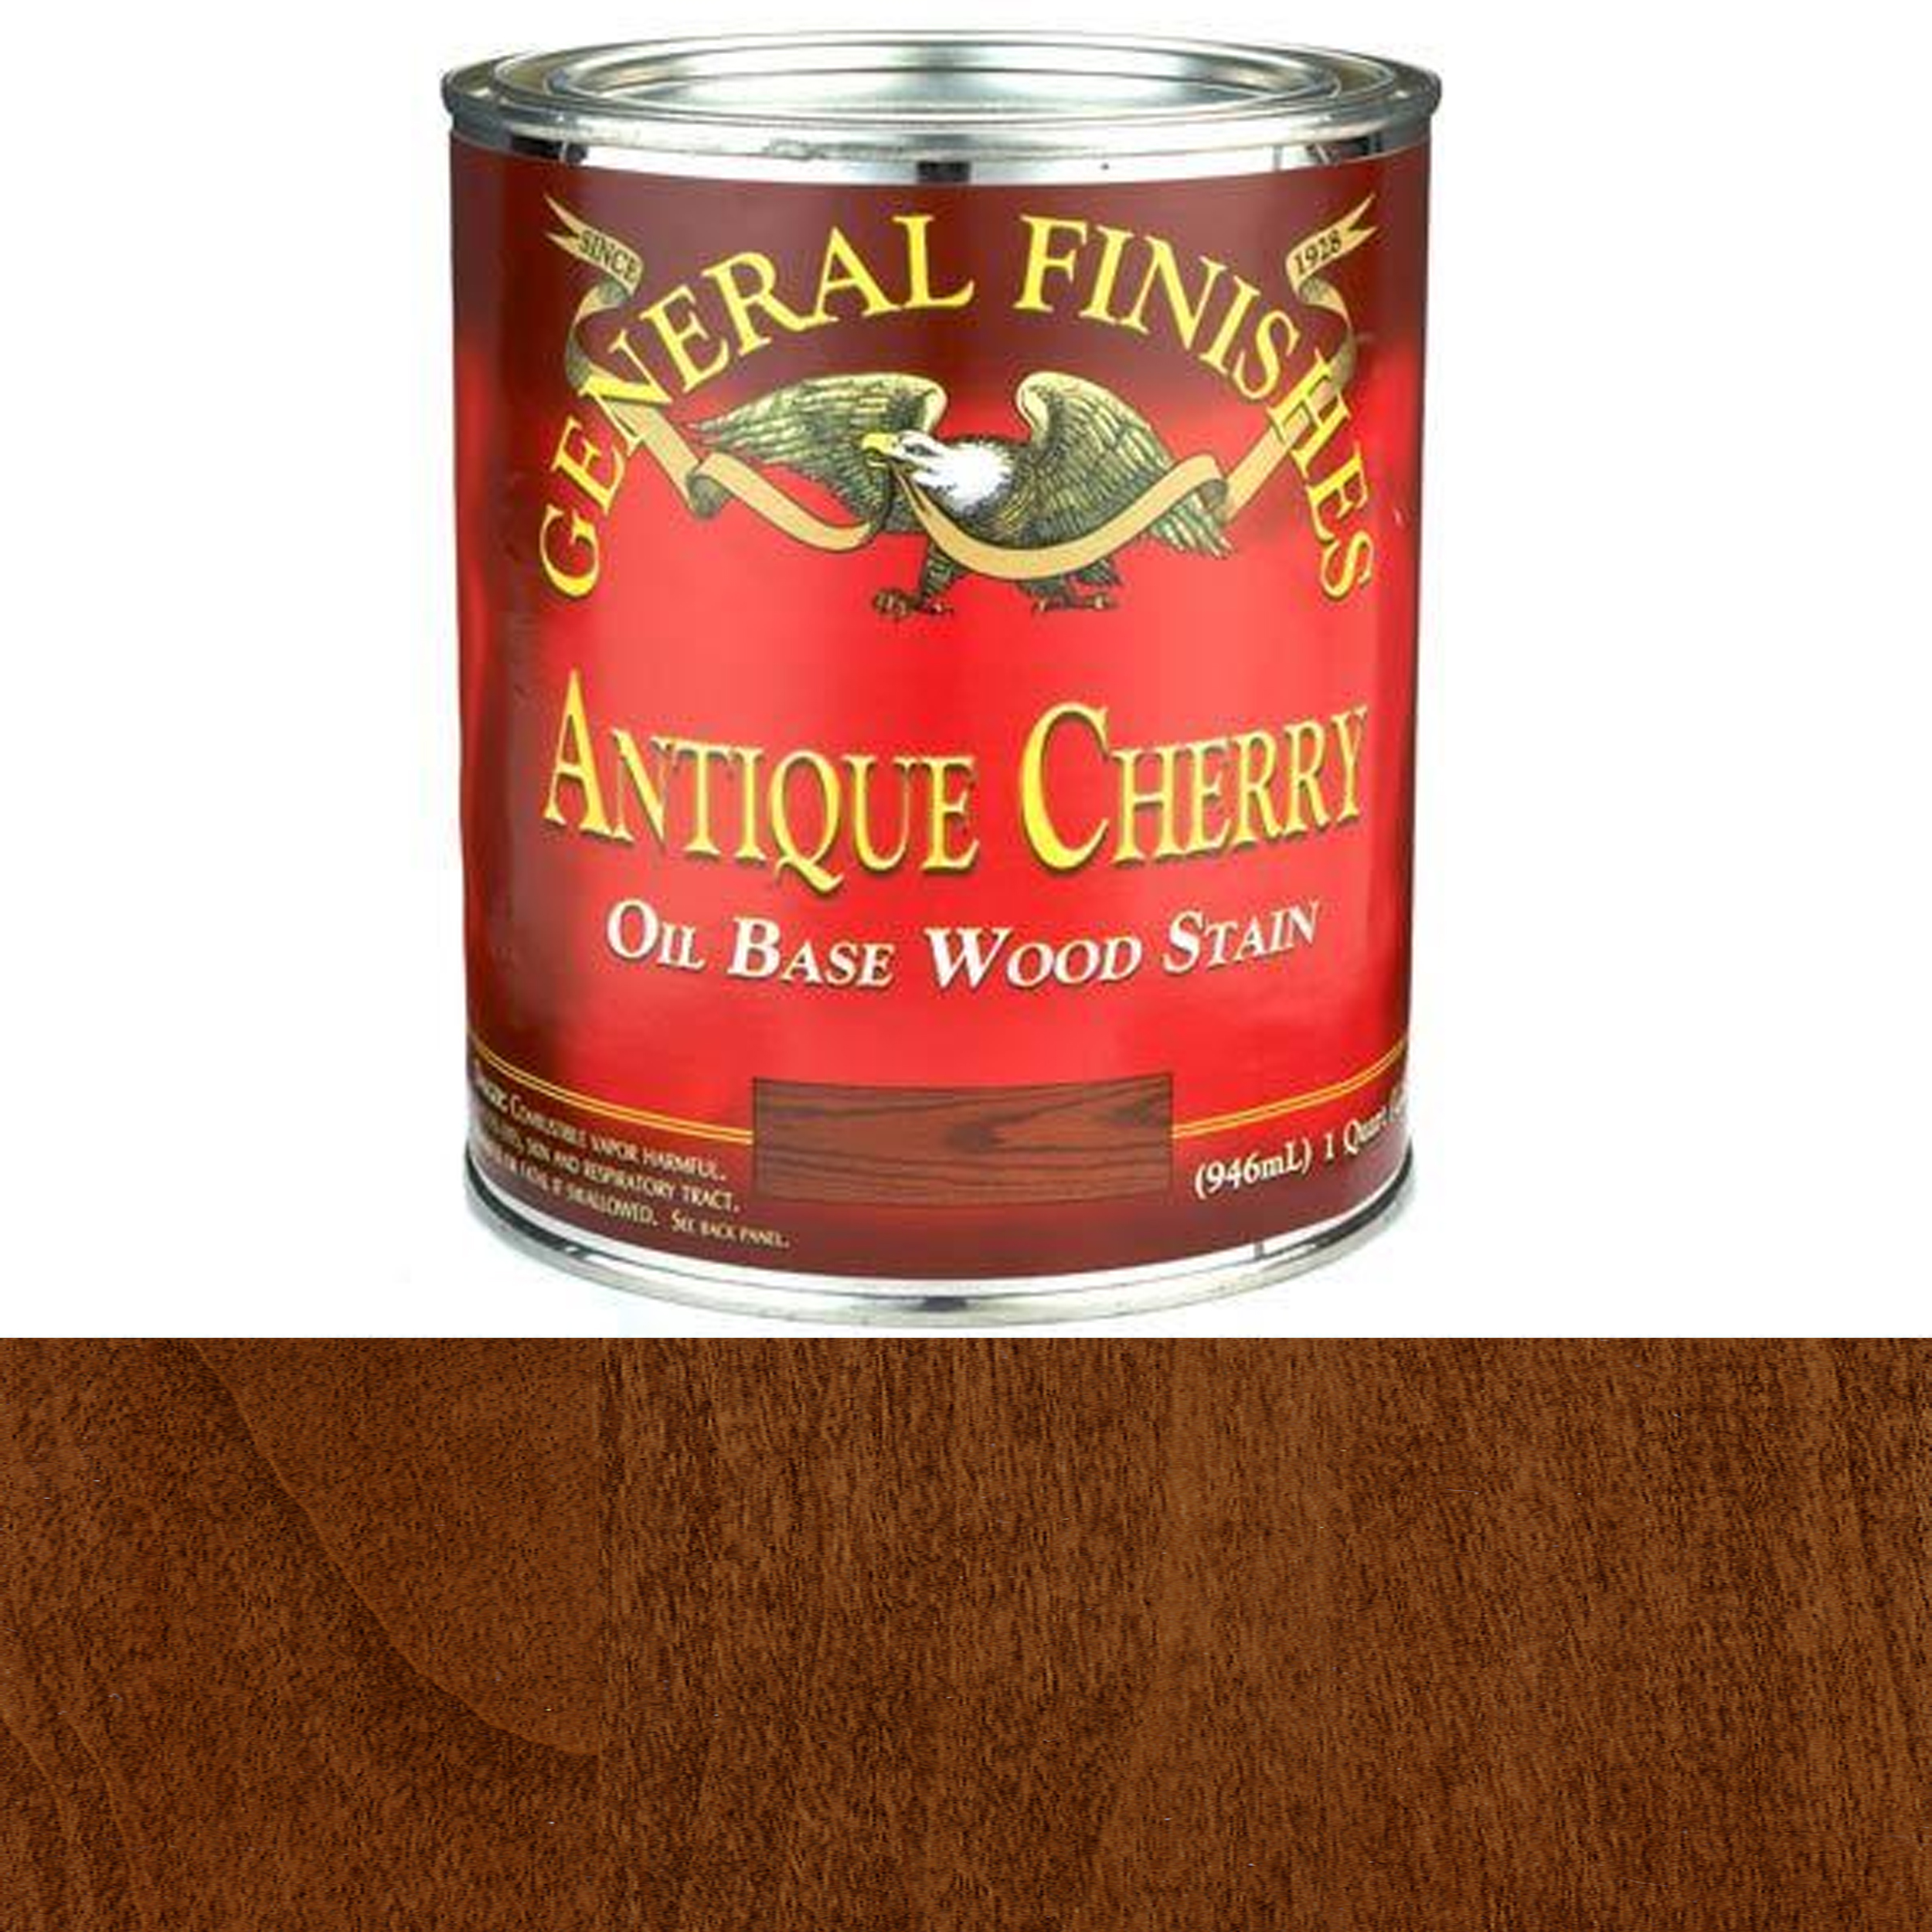 Antique Cherry Oil Stain, Quart